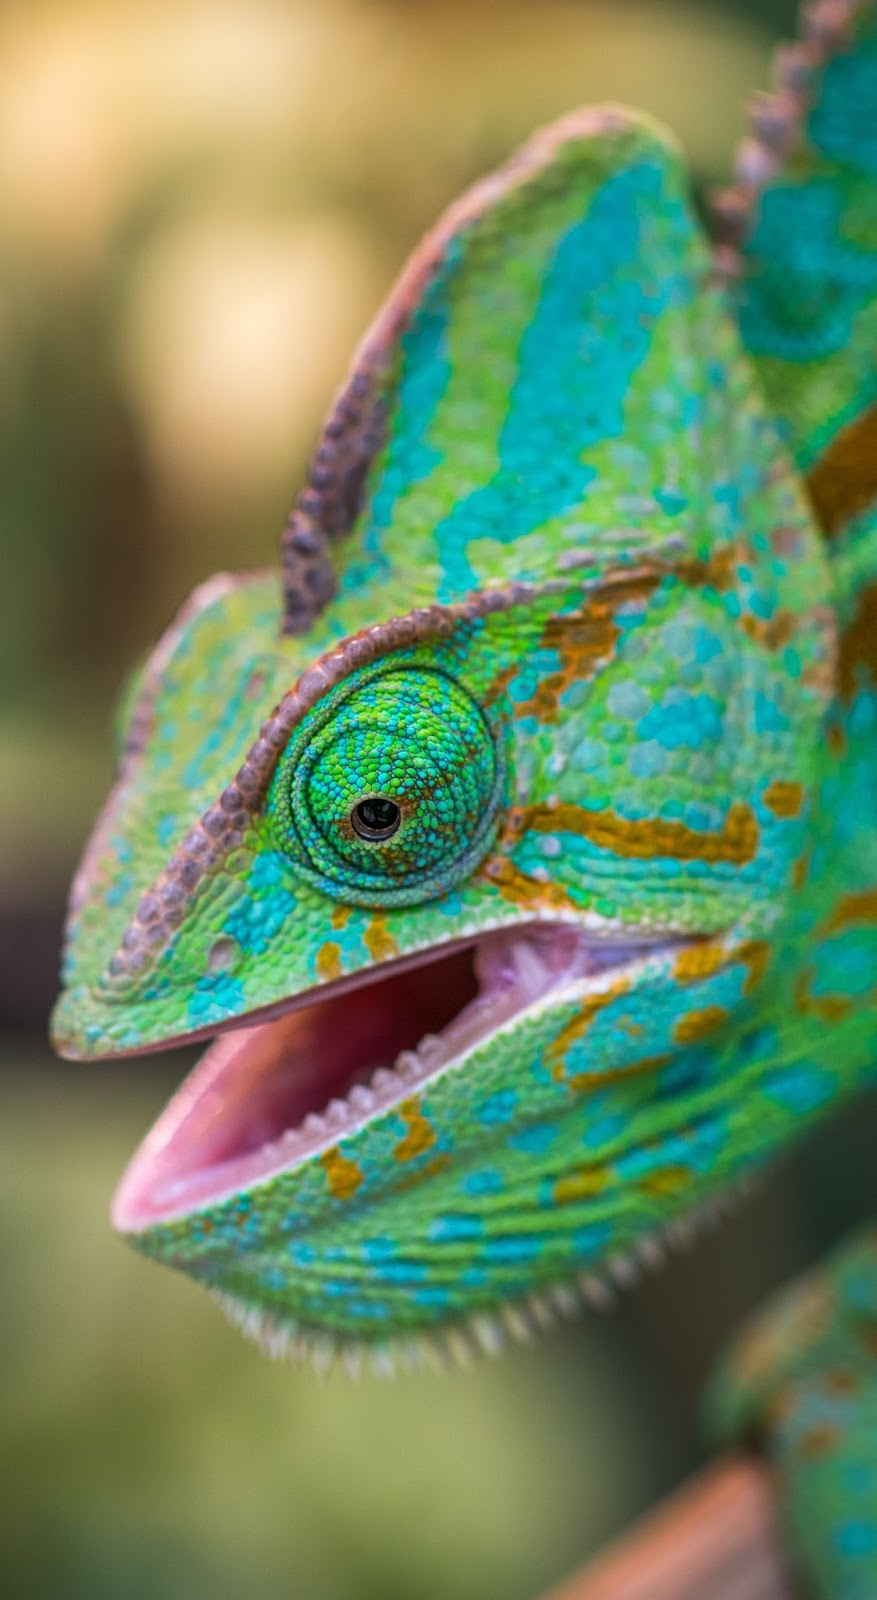 Picture of a chameleon up close.